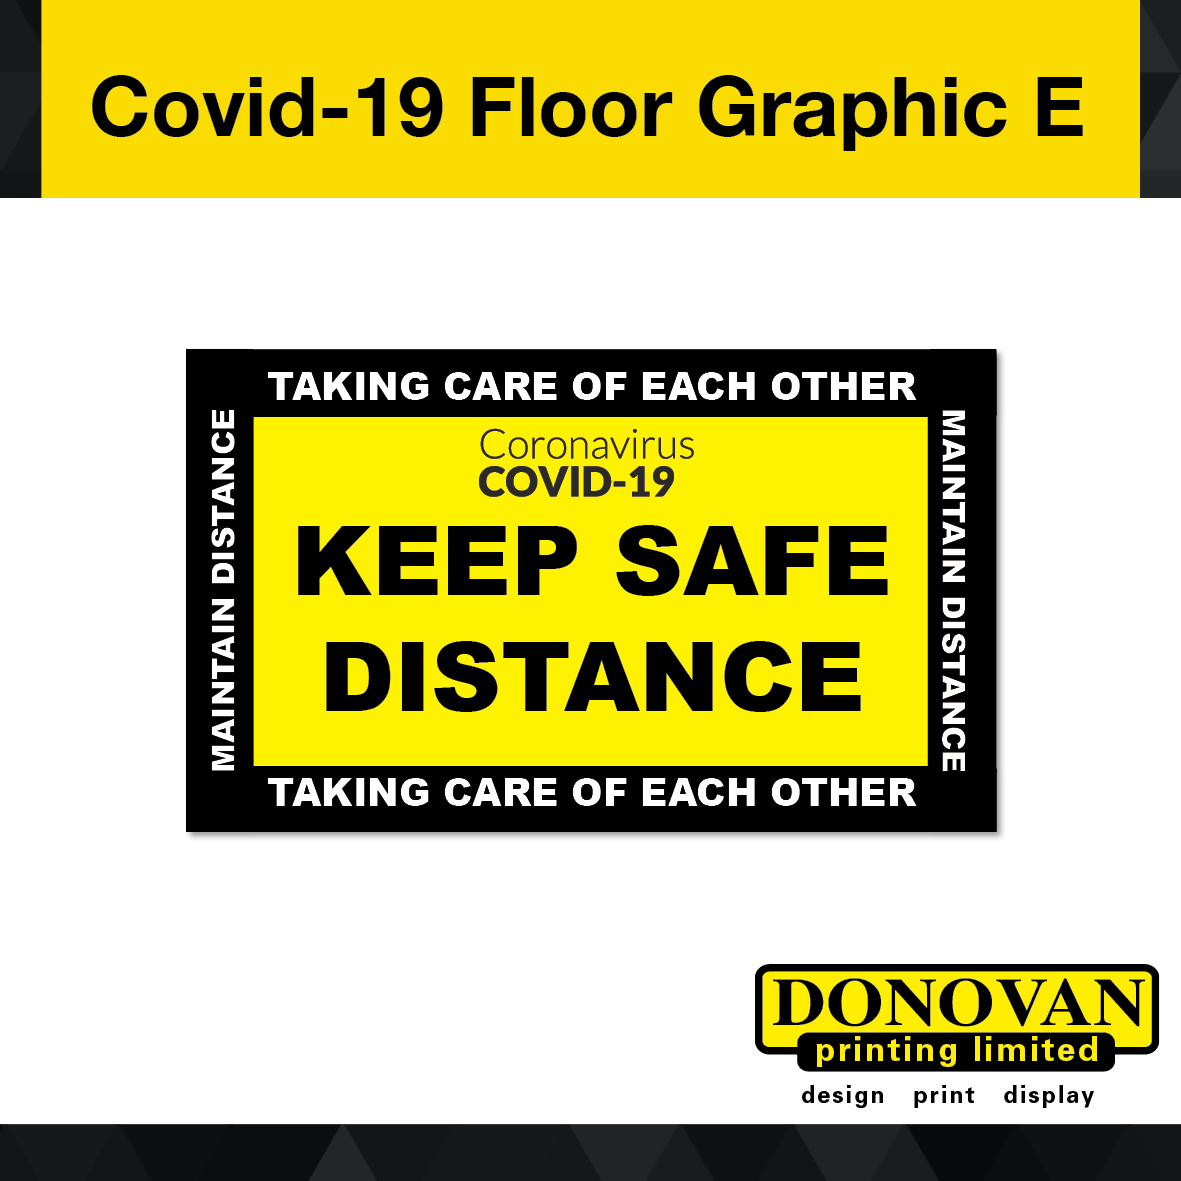 Covid Floor Graphic E Image